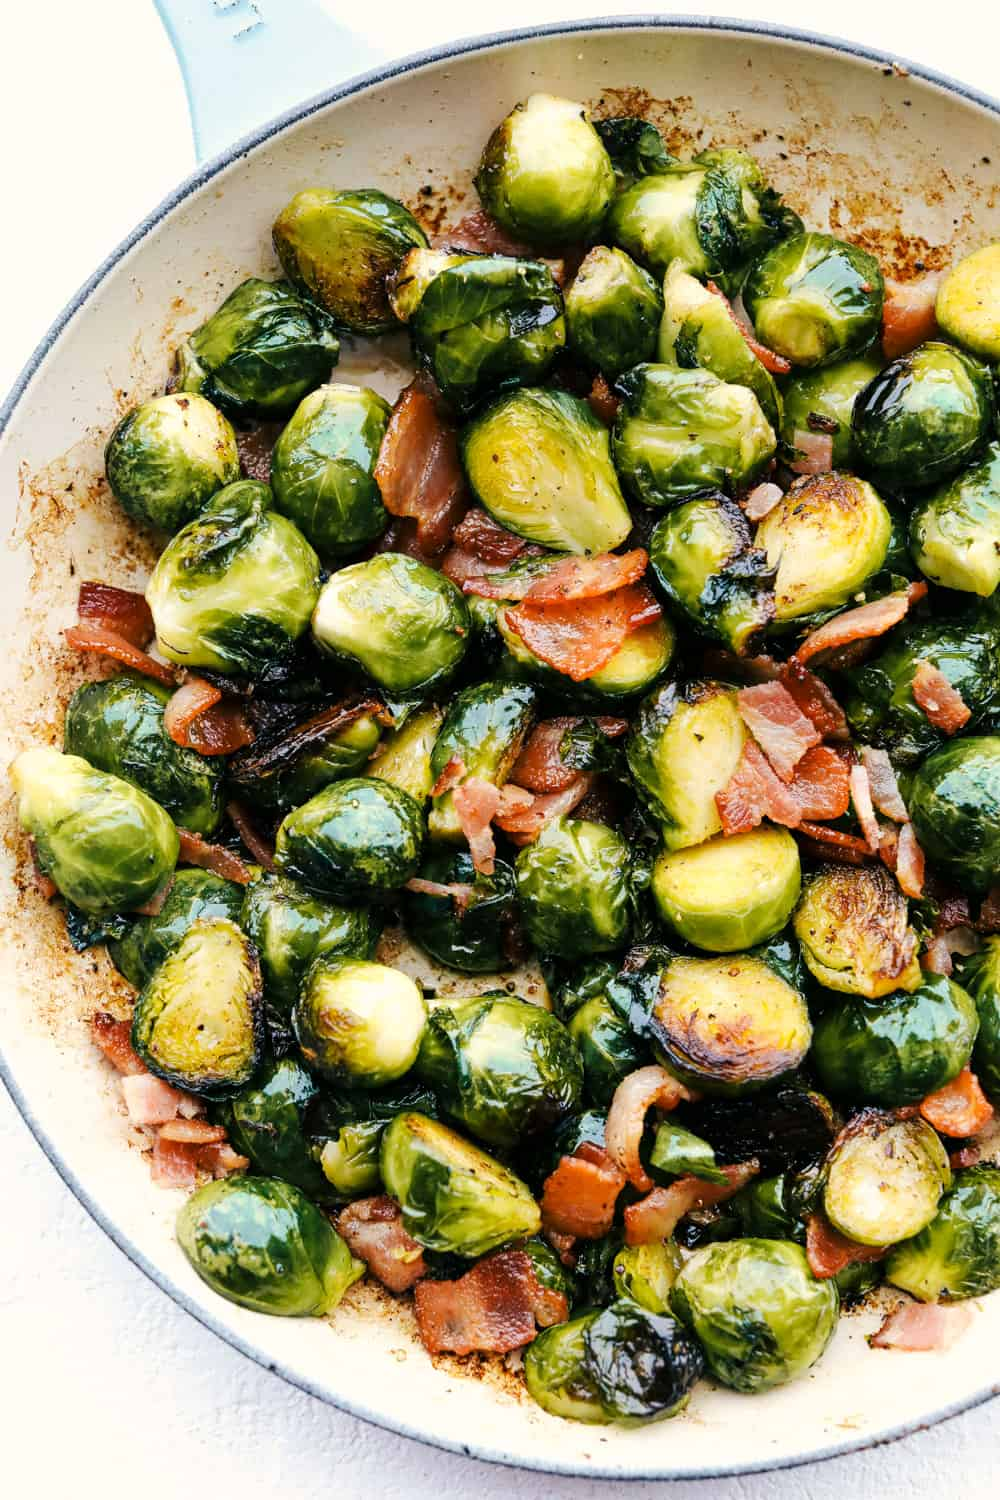 Brussel sprouts with bacon and maple syrup in a white bowl.